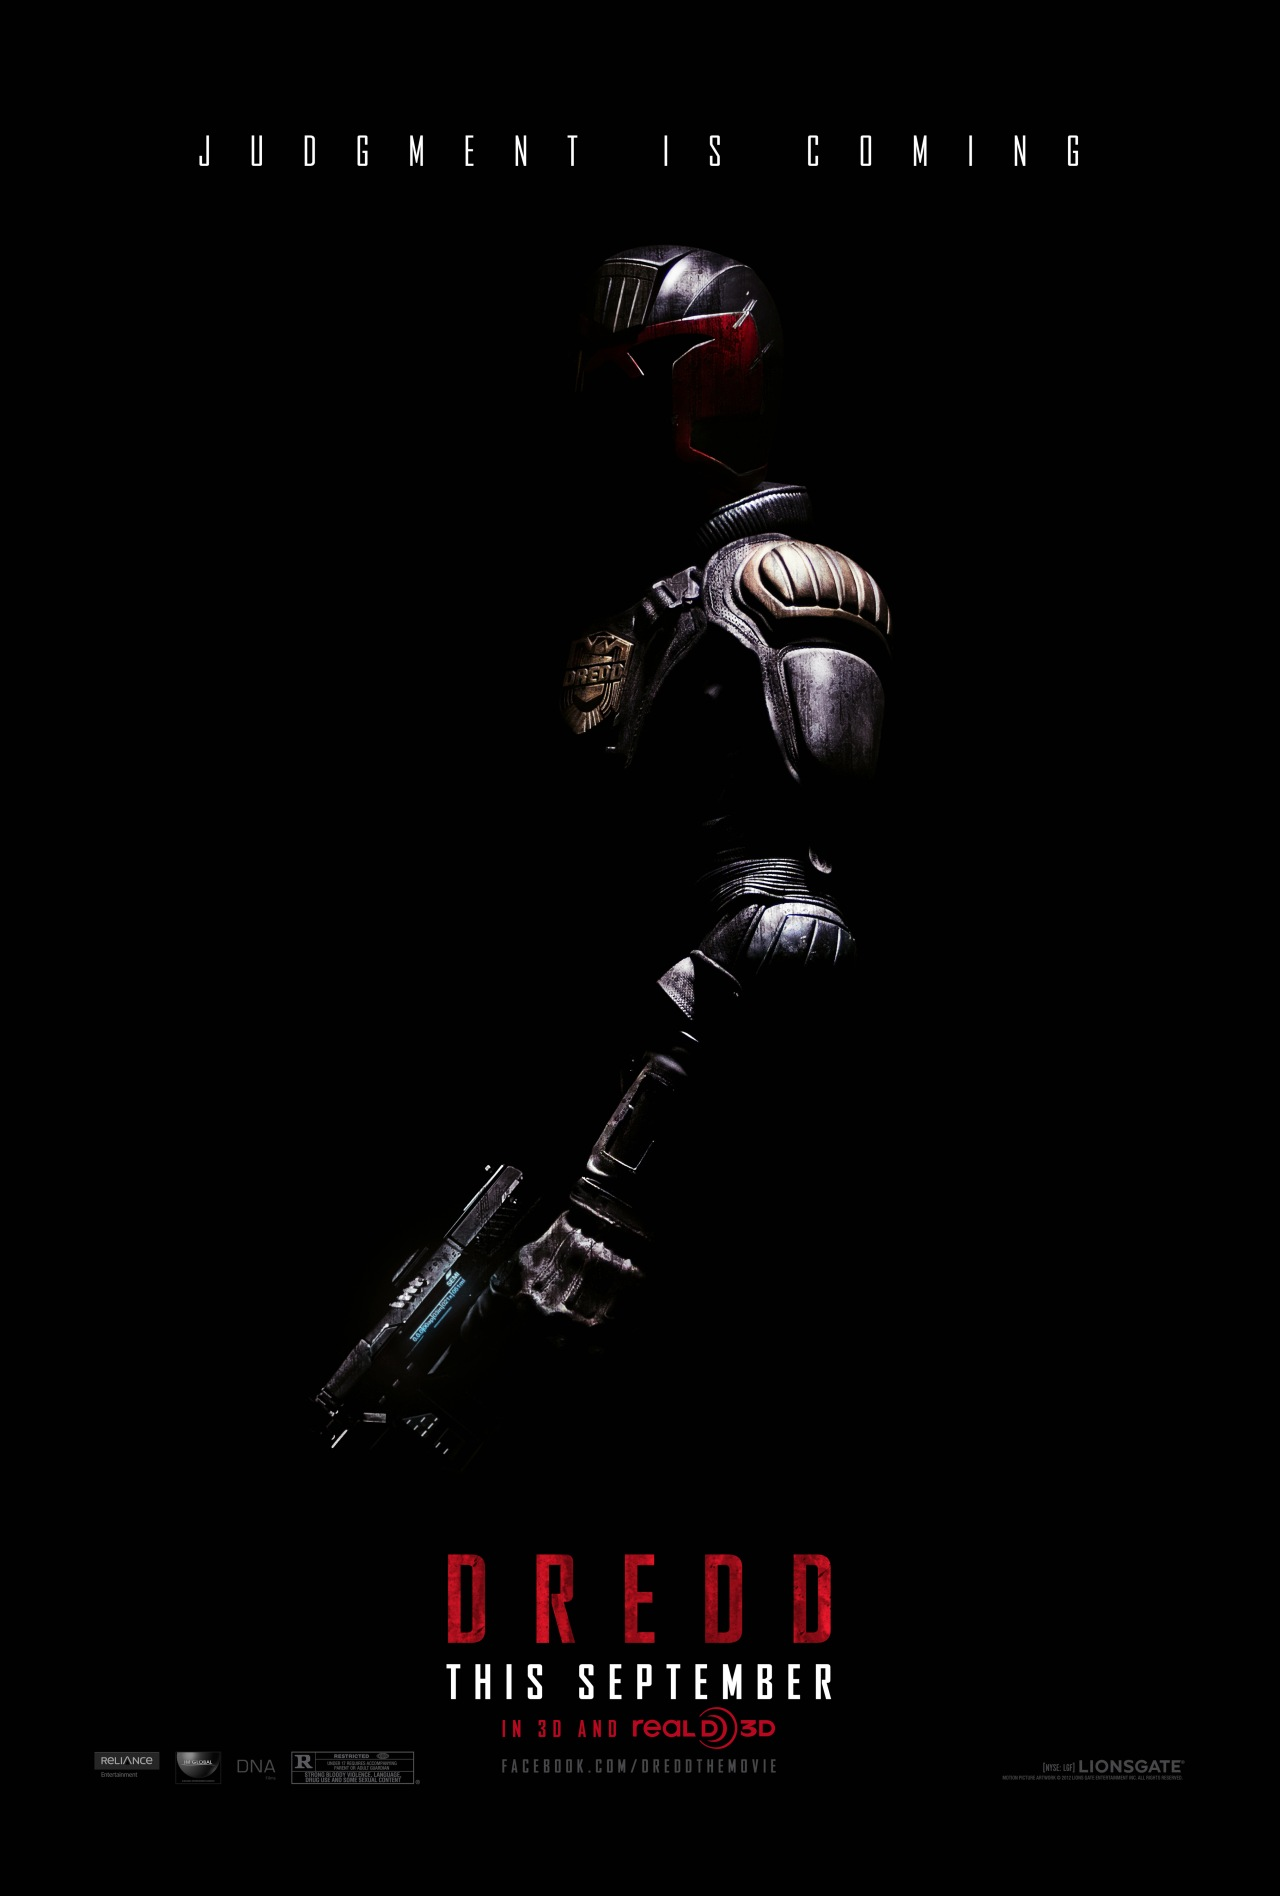 Judge Dredd Poster - Karl Urban